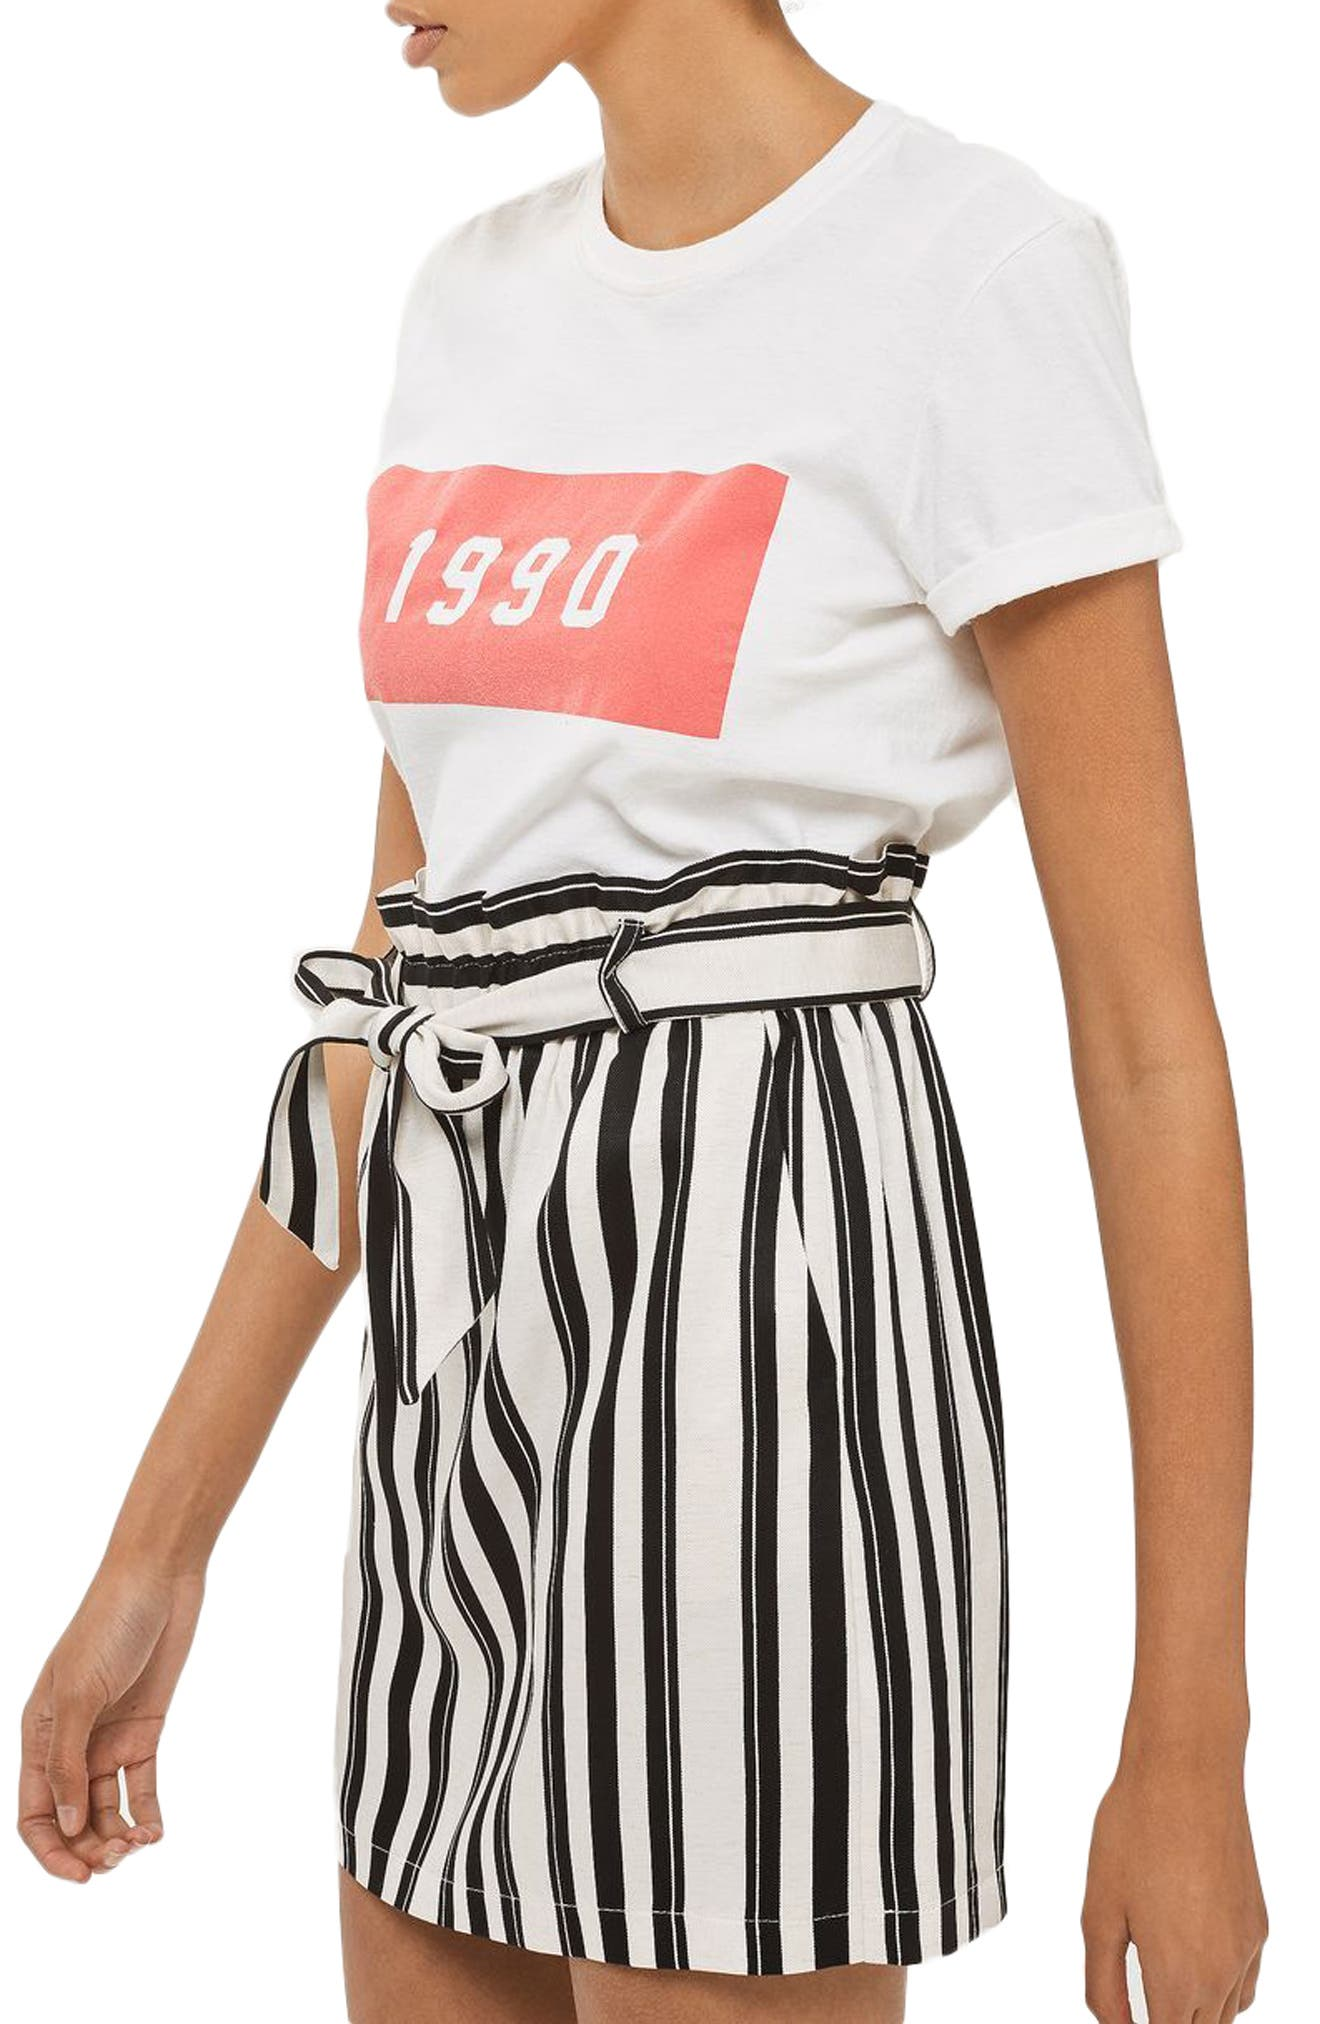 Topshop Stripe Paperbag Skirt